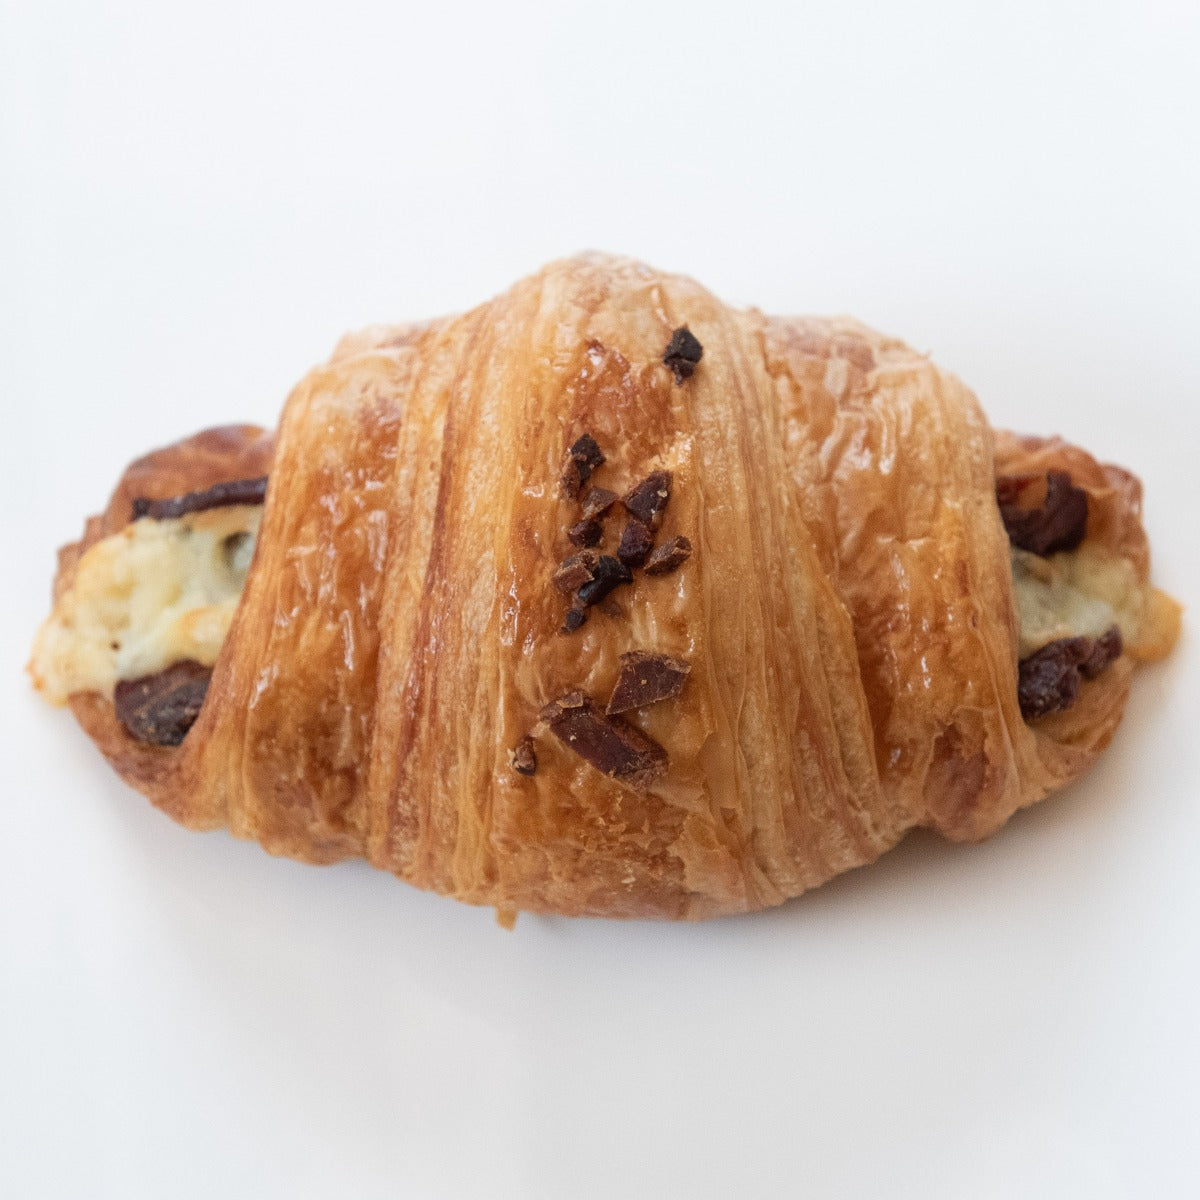 Double-Smoked Heritage Bacon and Cheese Croissant